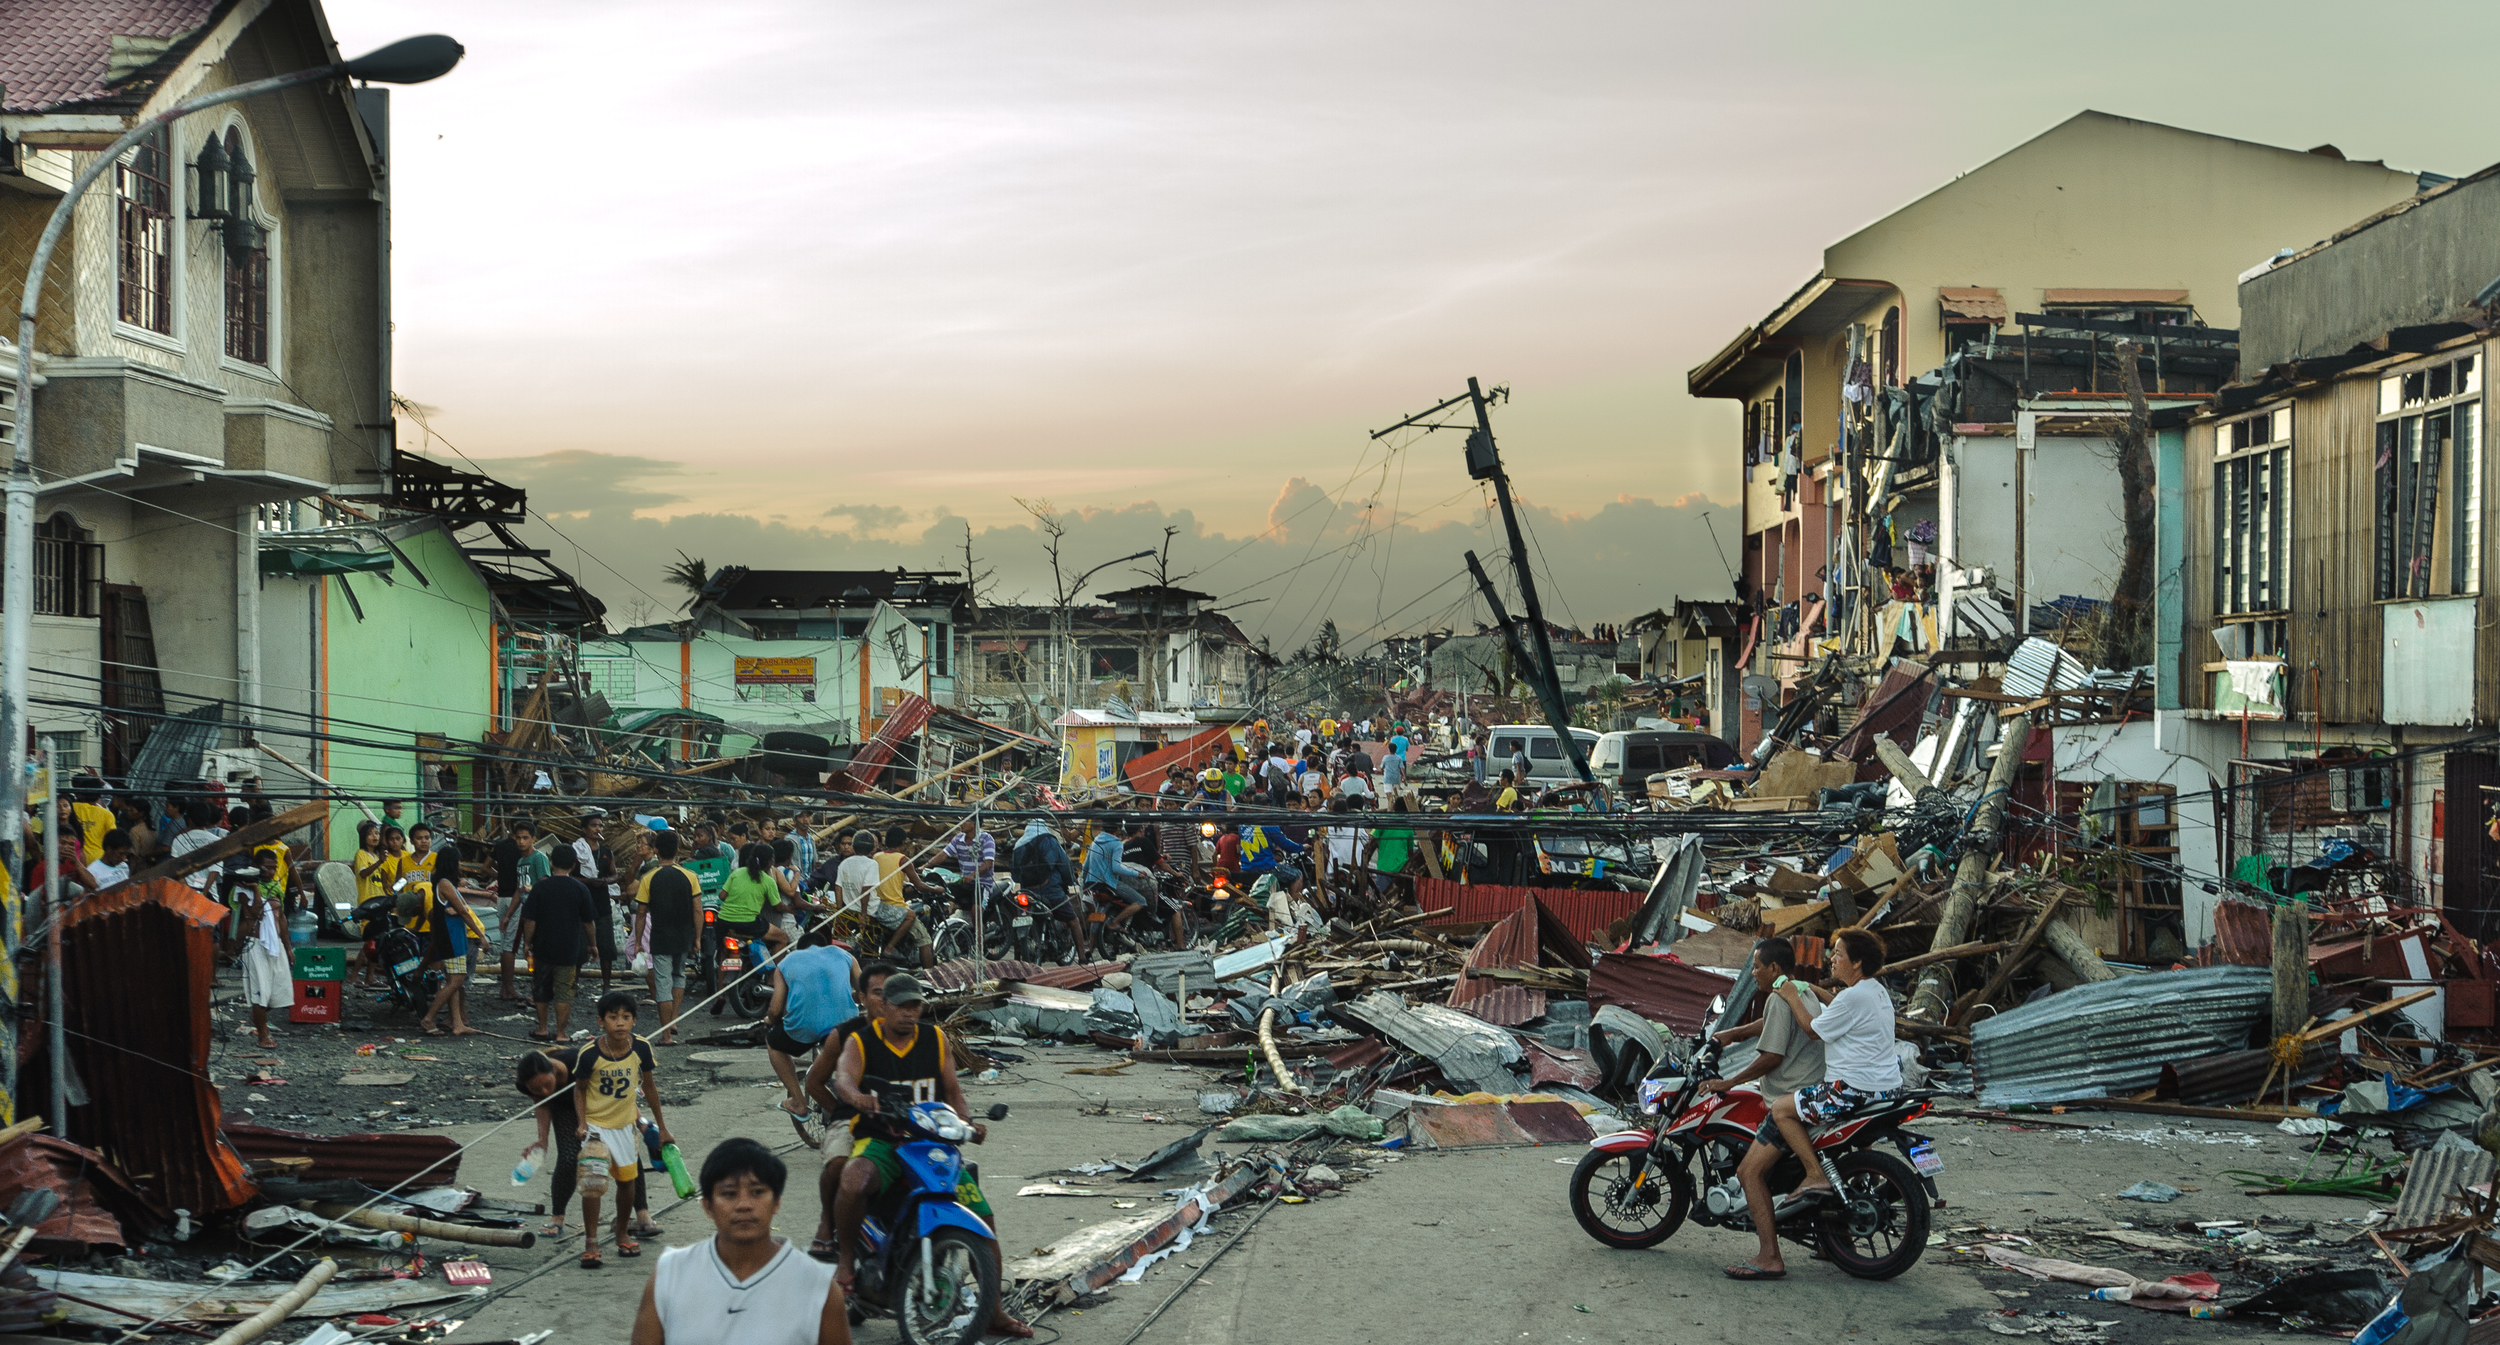 Dusk along the main road into Tanauan, 48 hours following the landfall of Typhoon Haiayan.